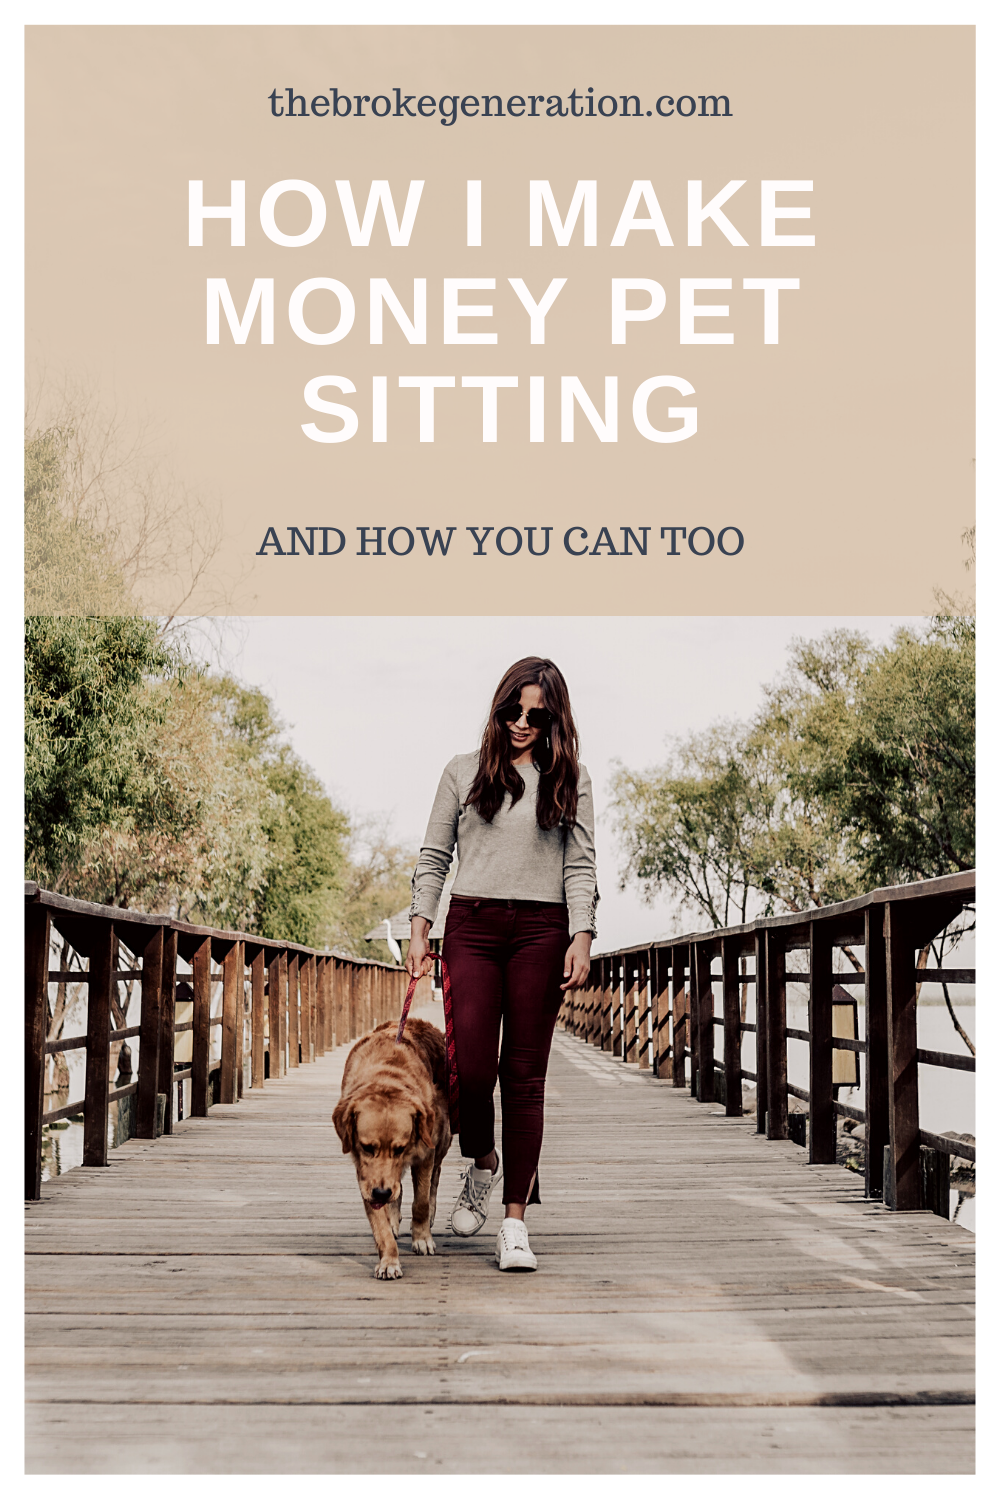 How I Make Money Pet Sitting and how you can too